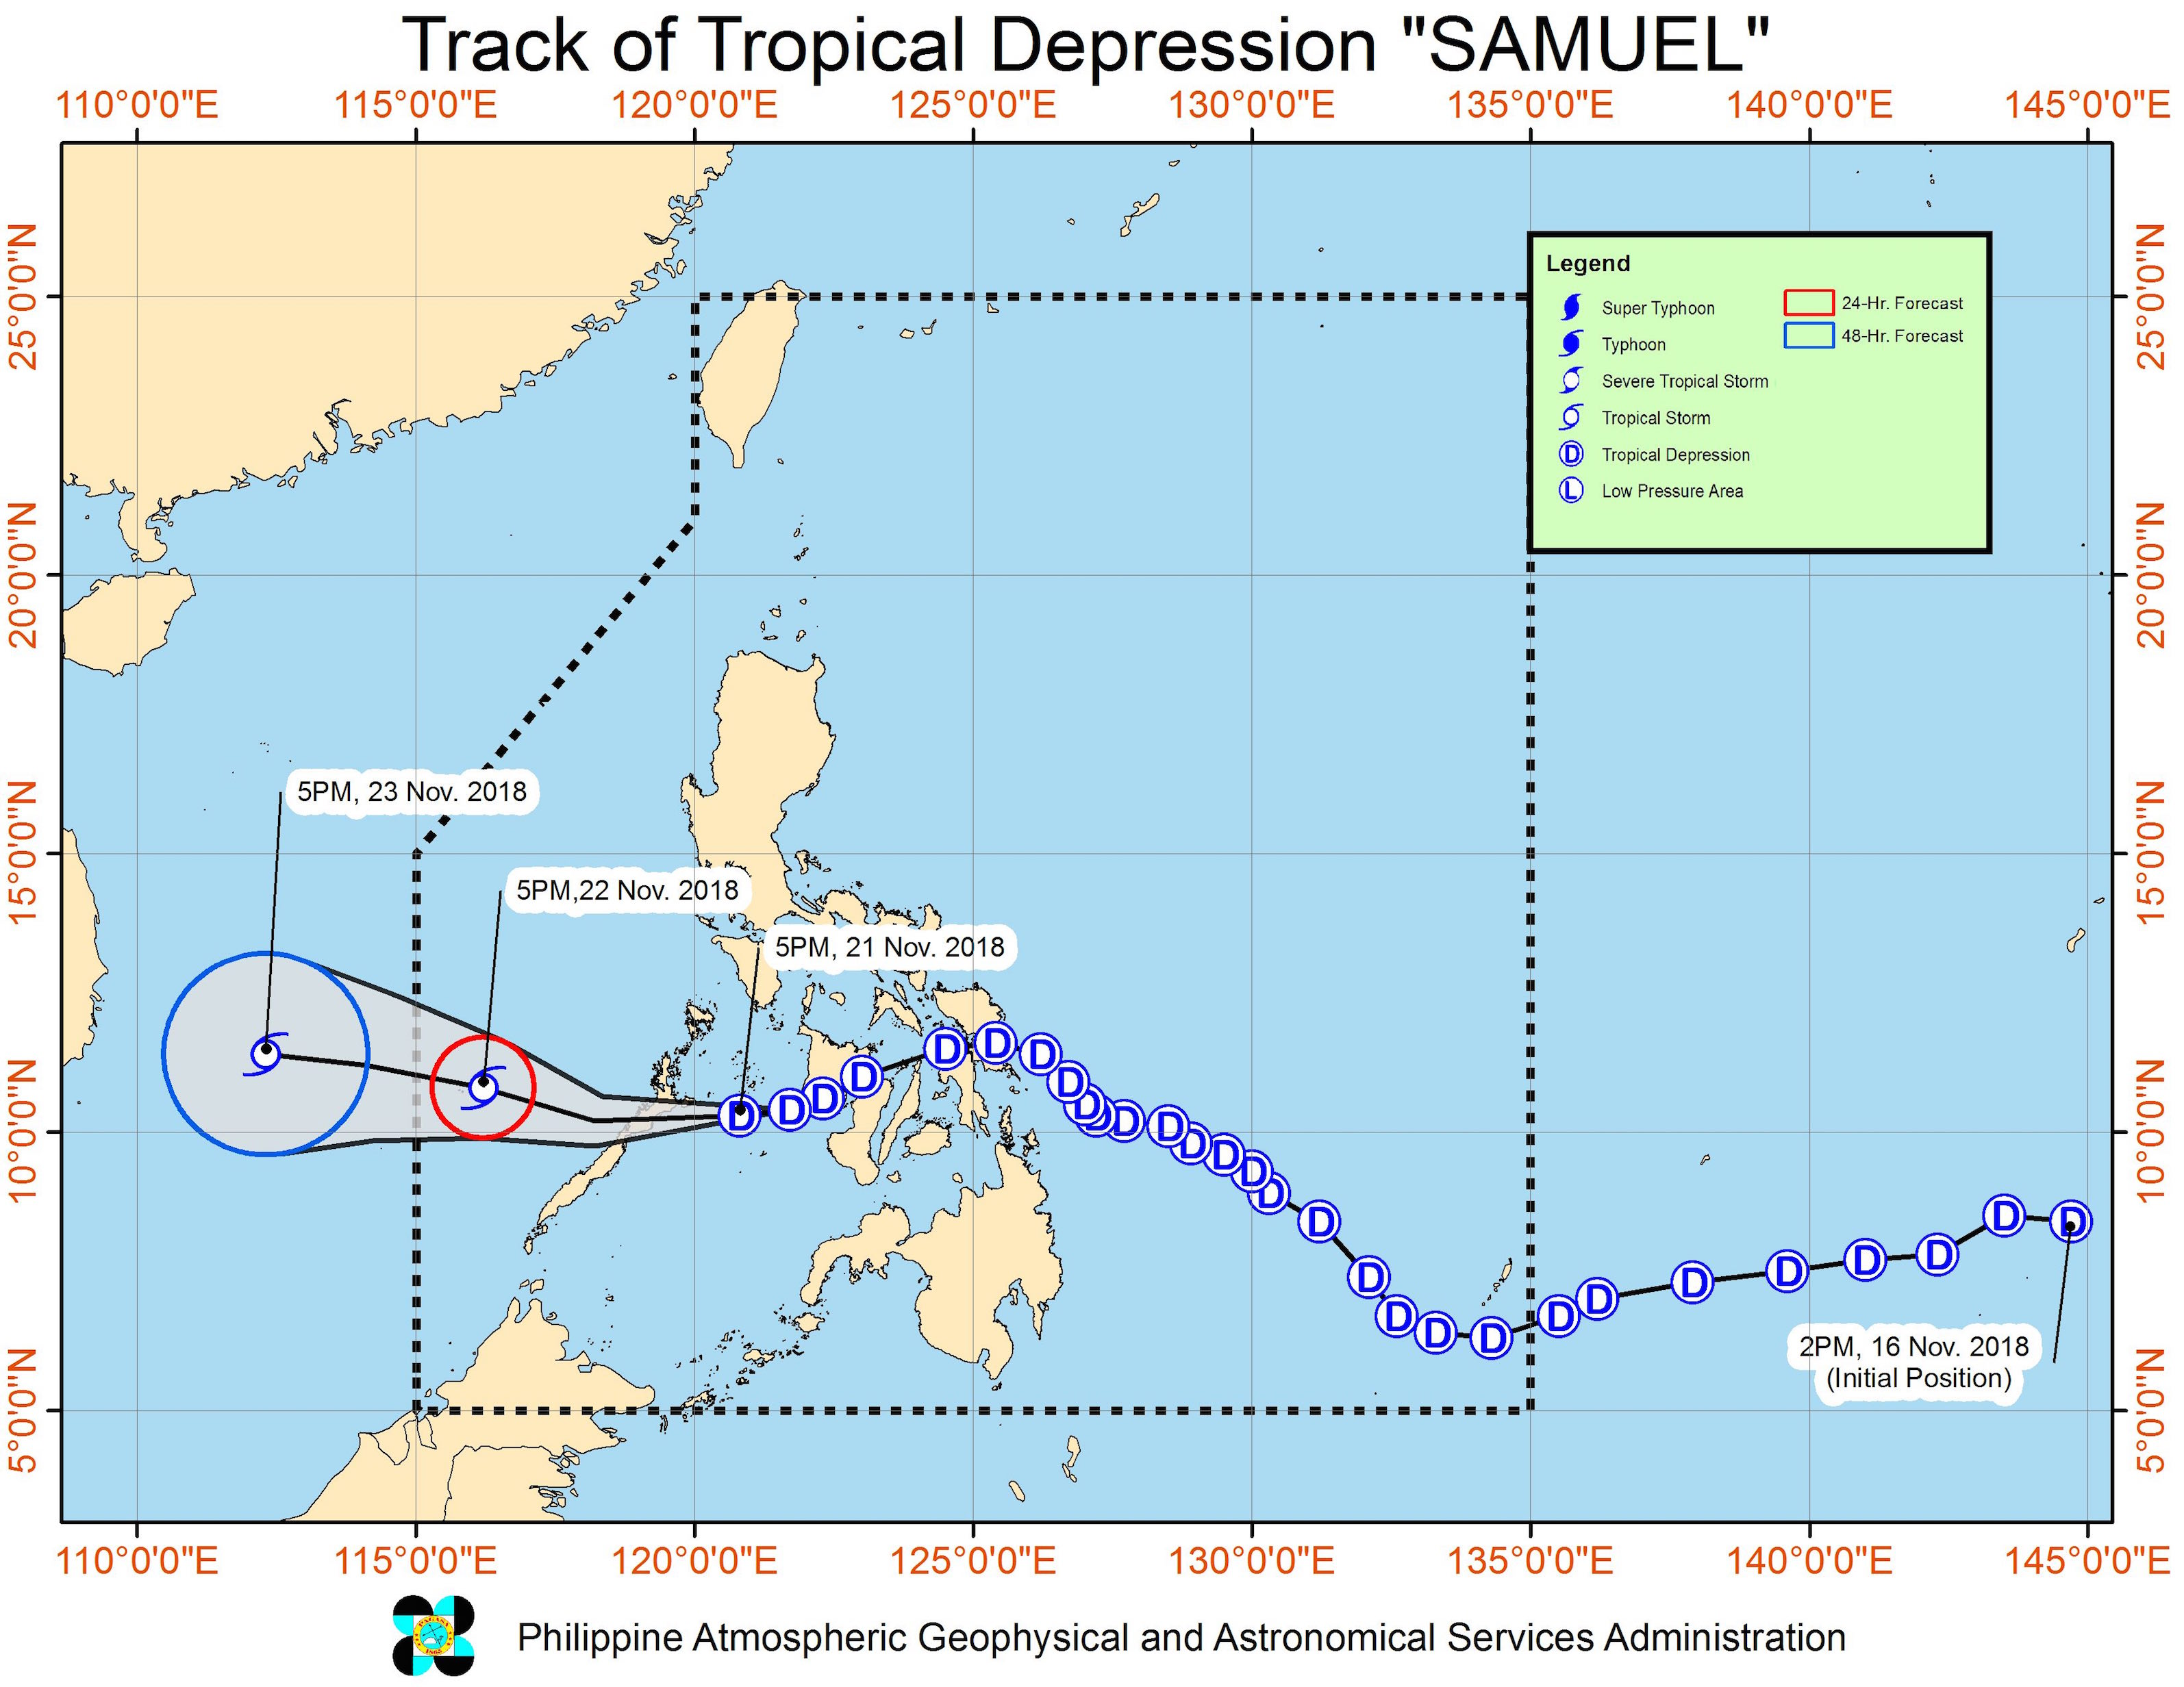 Forecast track of Tropical Depression Samuel as of November 21, 2018, 8 pm. Image from PAGASA